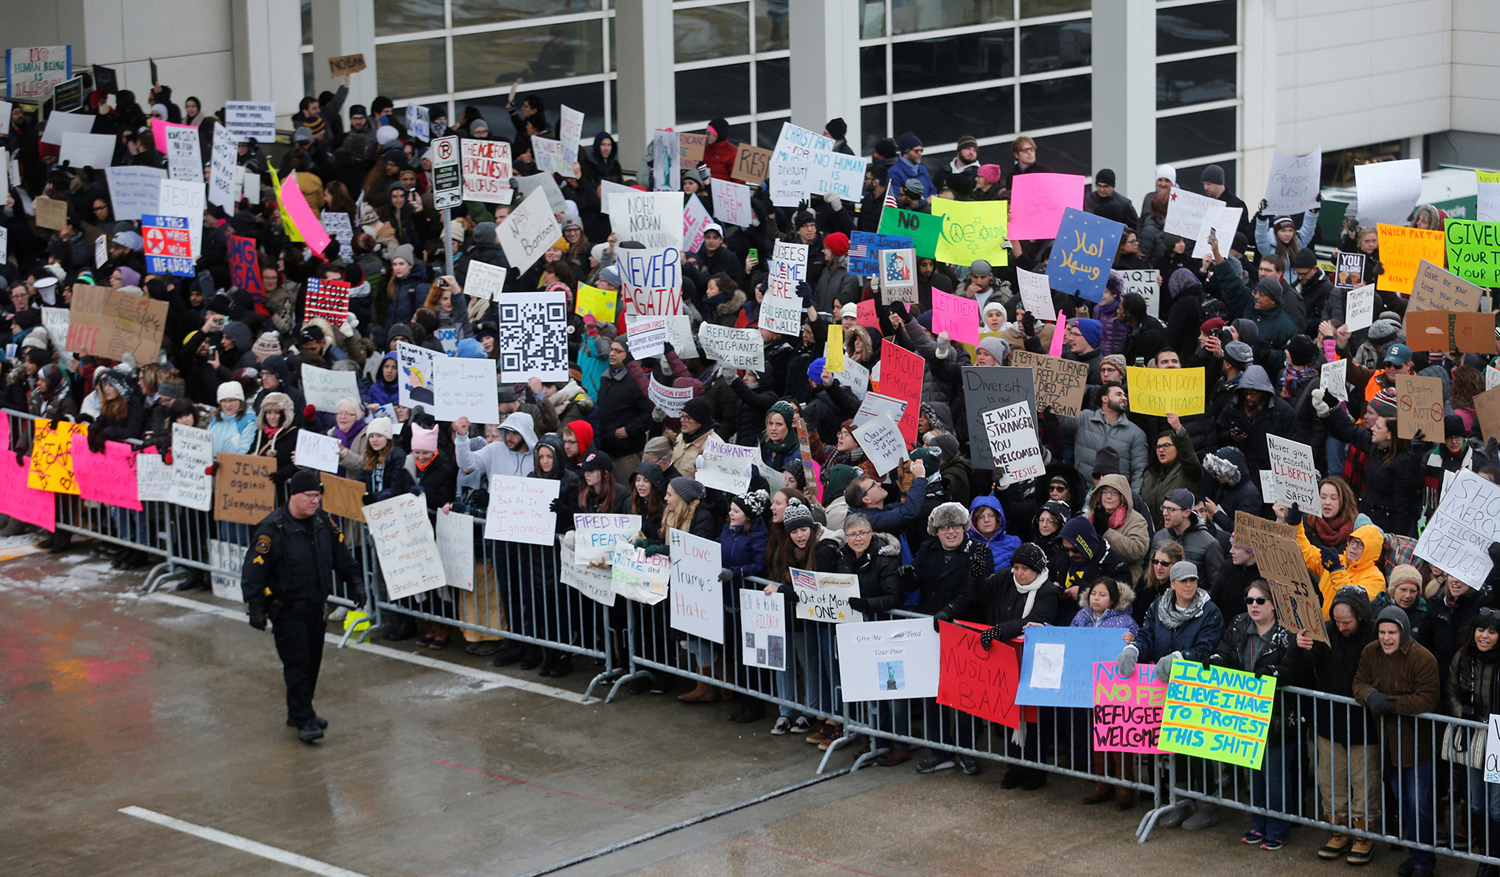 Hundreds of people rally against the temporary travel ban during a protest at Detroit Metropolitan airport in Romulus, Michigan, on January 29, 2017.